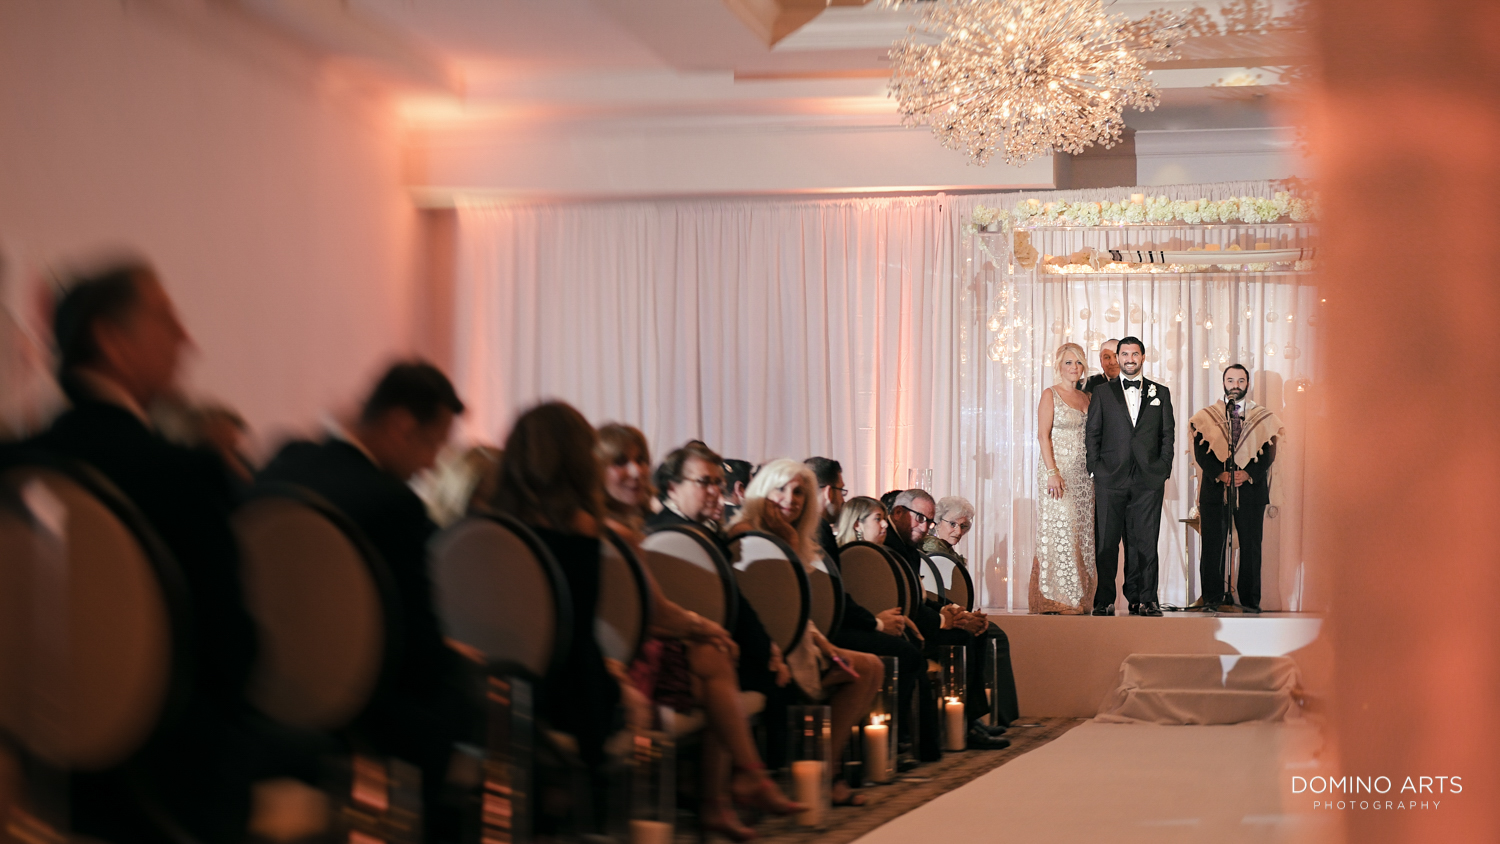 Luxury lifestyle wedding photography at The Polo Club, Boca Raton, Florida